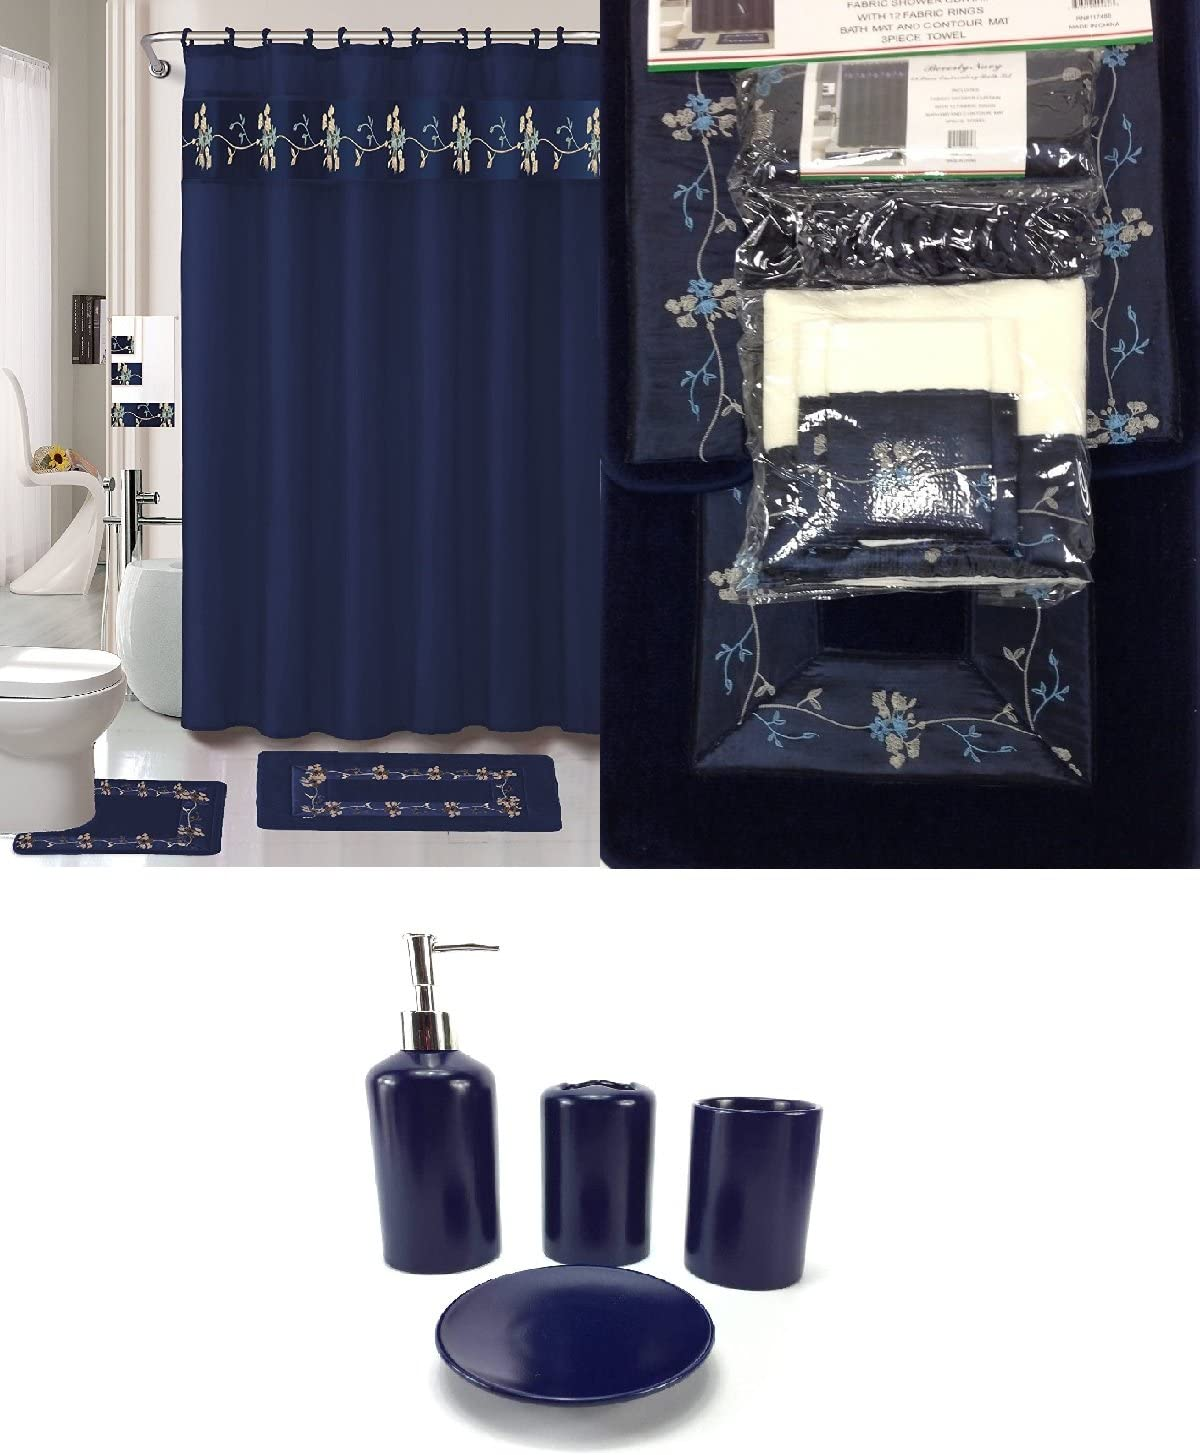 8 Piece Bath Accessory Set Navy Blue Flower Bathroom Rug Set +